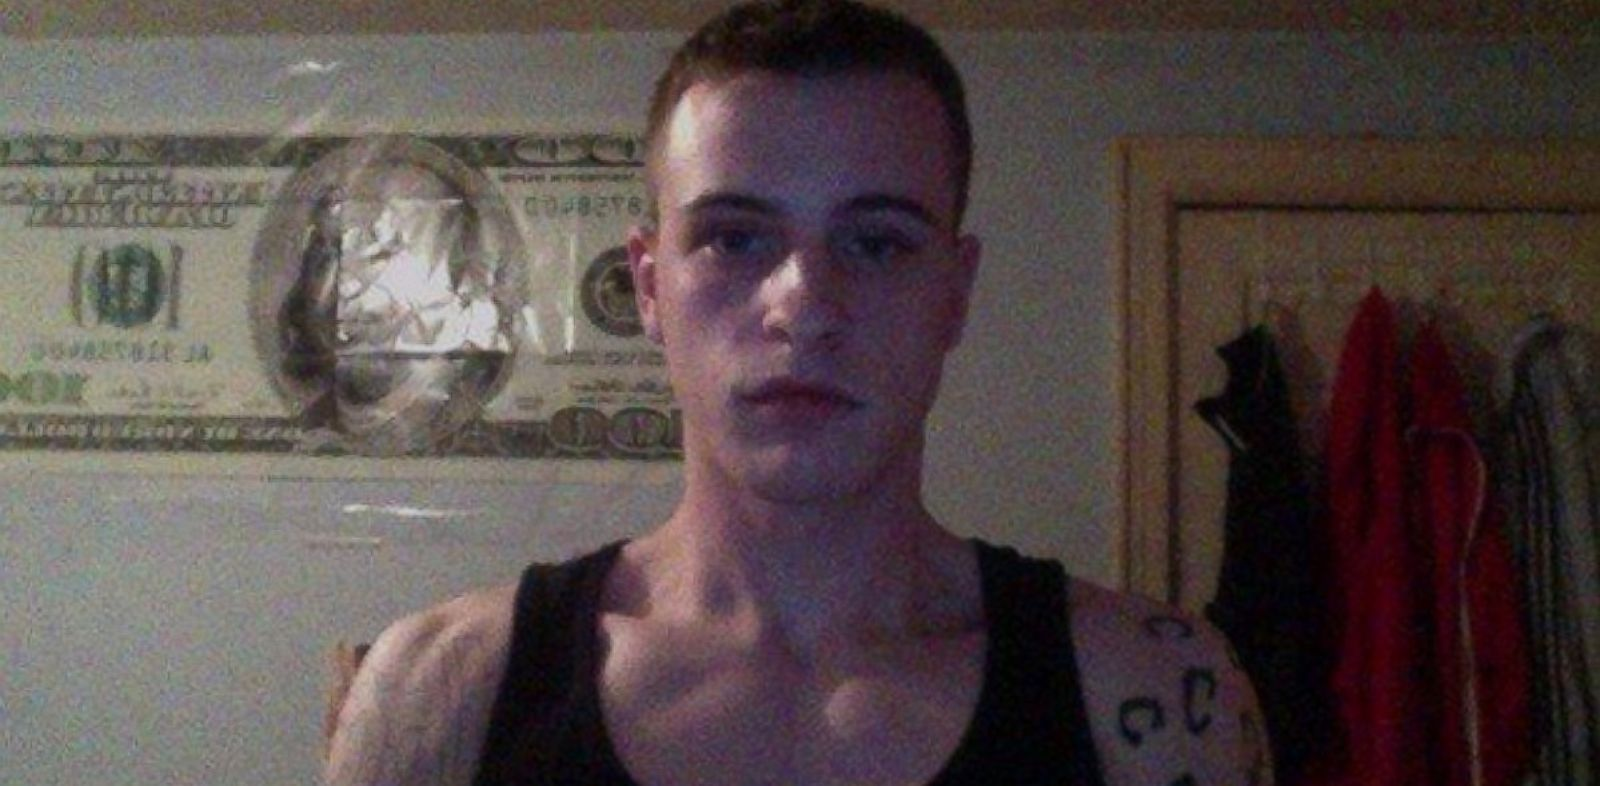 PHOTO: Richard Shoop, 20, of Teaneck, N.J., was identified by police as the gunman who opened fire inside the Westfield Garden State Plaza Mall Nov. 4, 2013. Shoop was found dead inside the mall with a self-inflicted gunshot wound, police said.